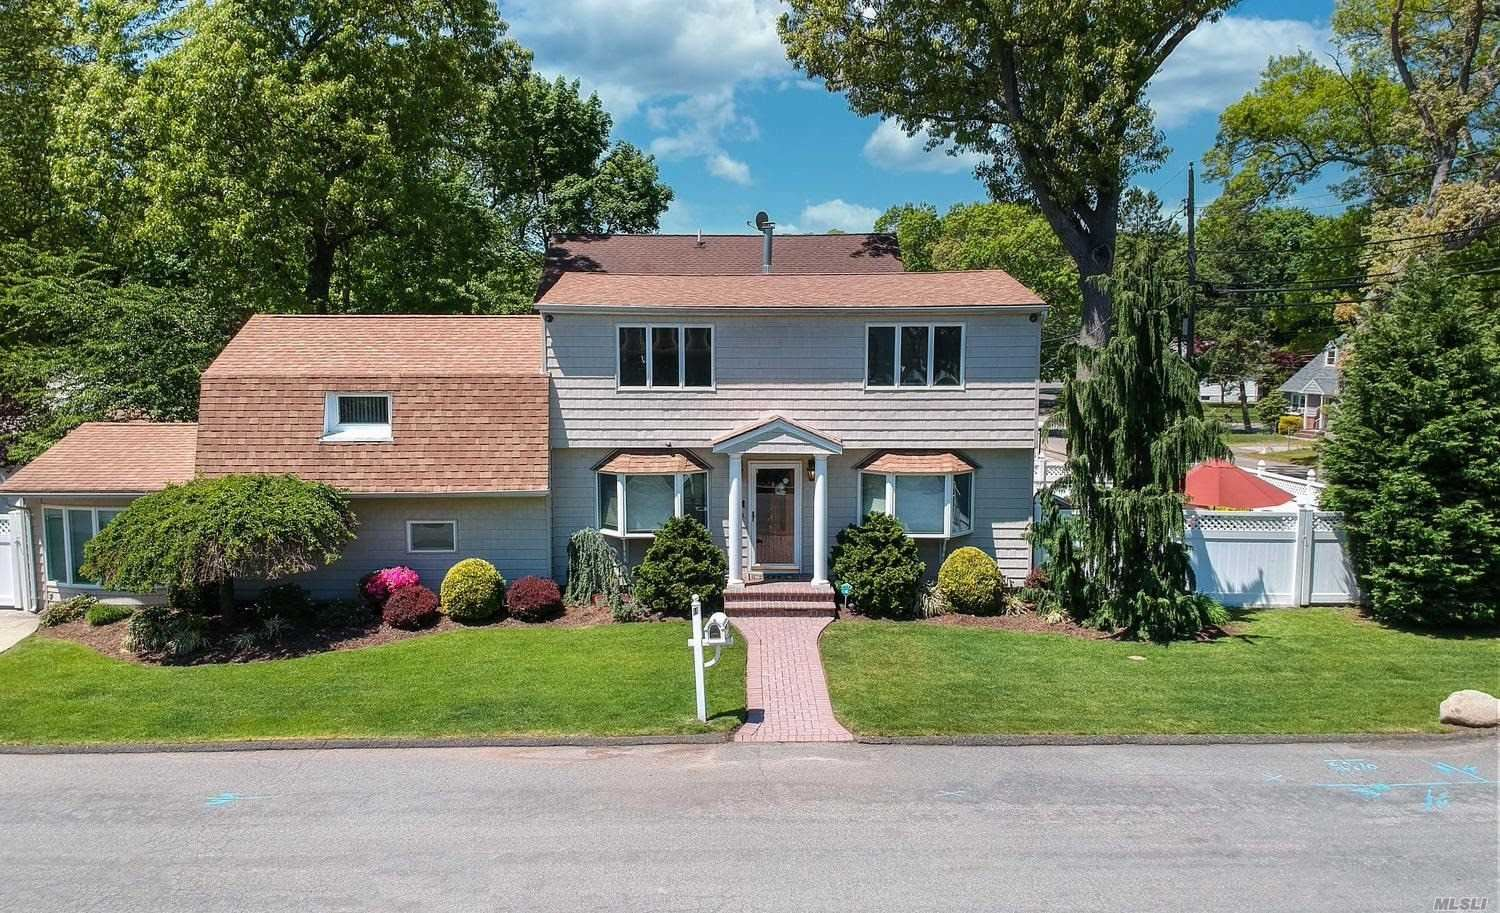 1 Fleetwood Avenue, Melville, NY 11747 - MLS#: 3216979